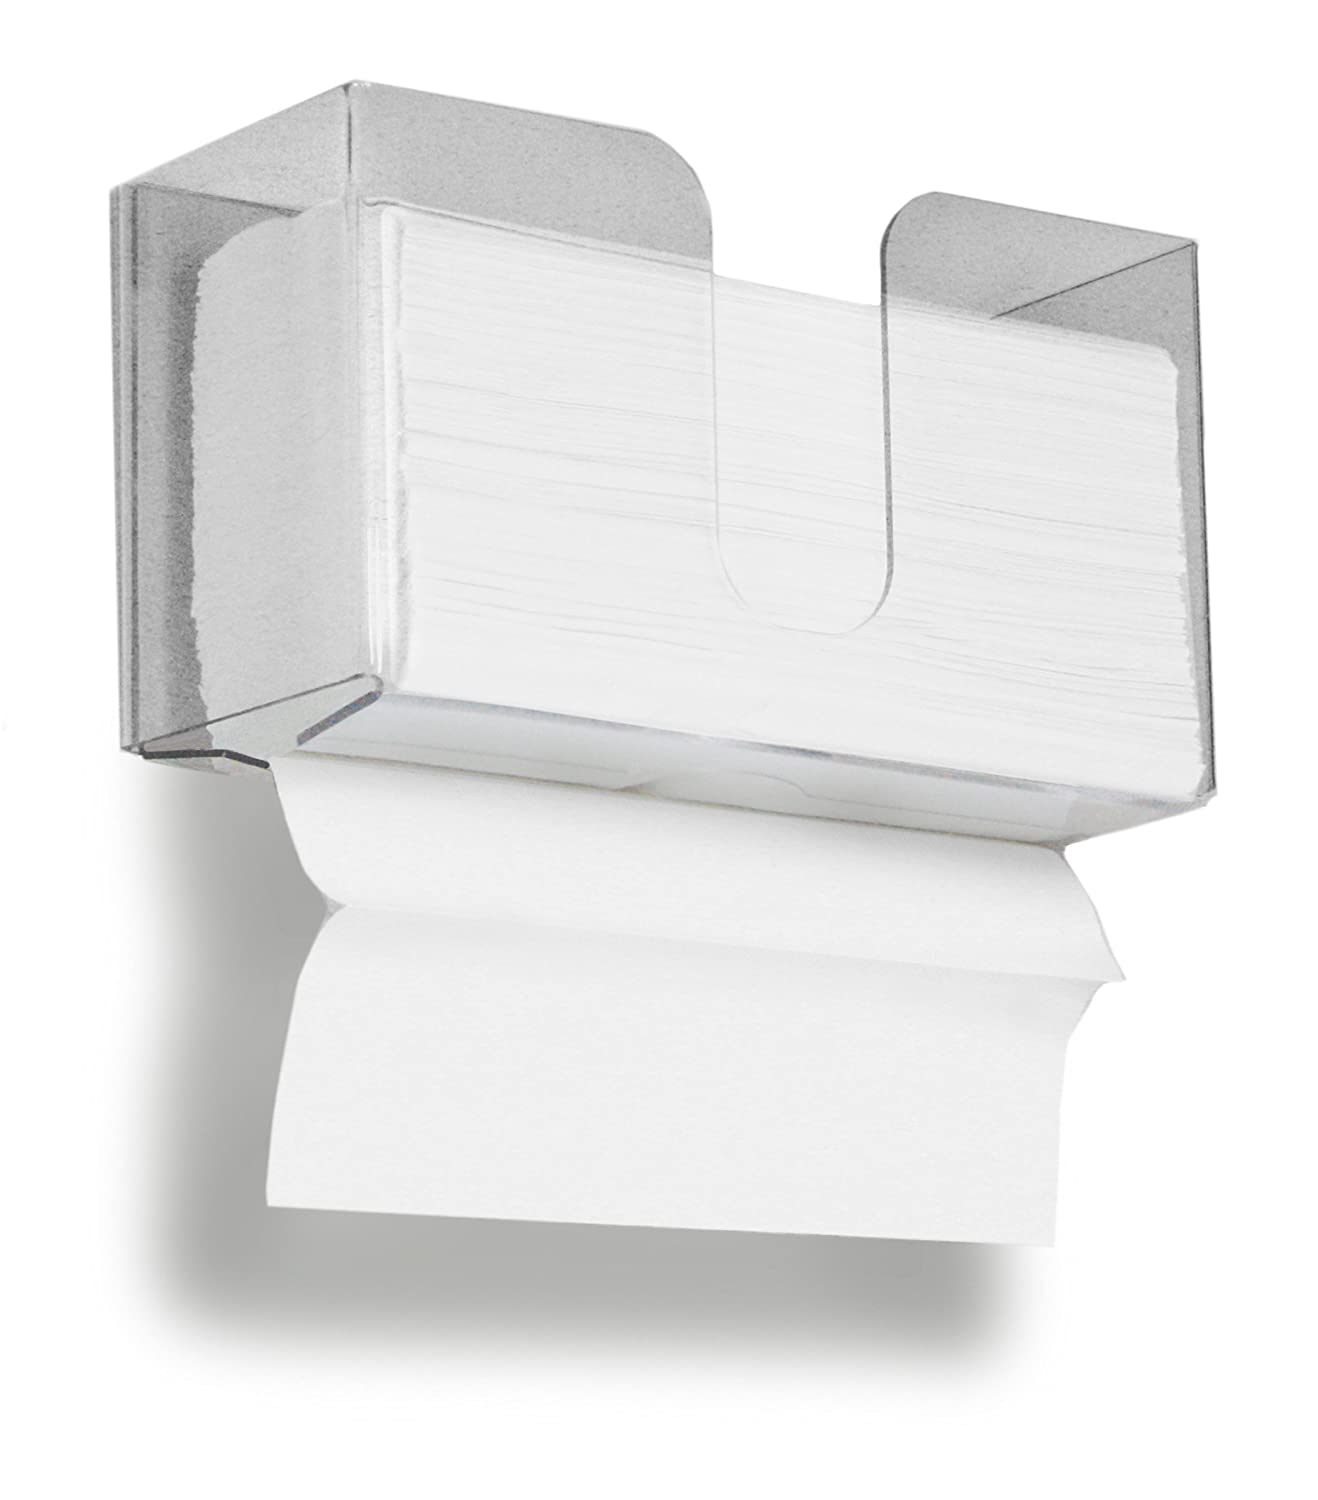 Elegant TrippNT 52911 Dual Dispensing Paper Towel Holder With 150 Multi Fold Paper  Towel Capacity Magnet Mount: Amazon.com: Industrial U0026 Scientific